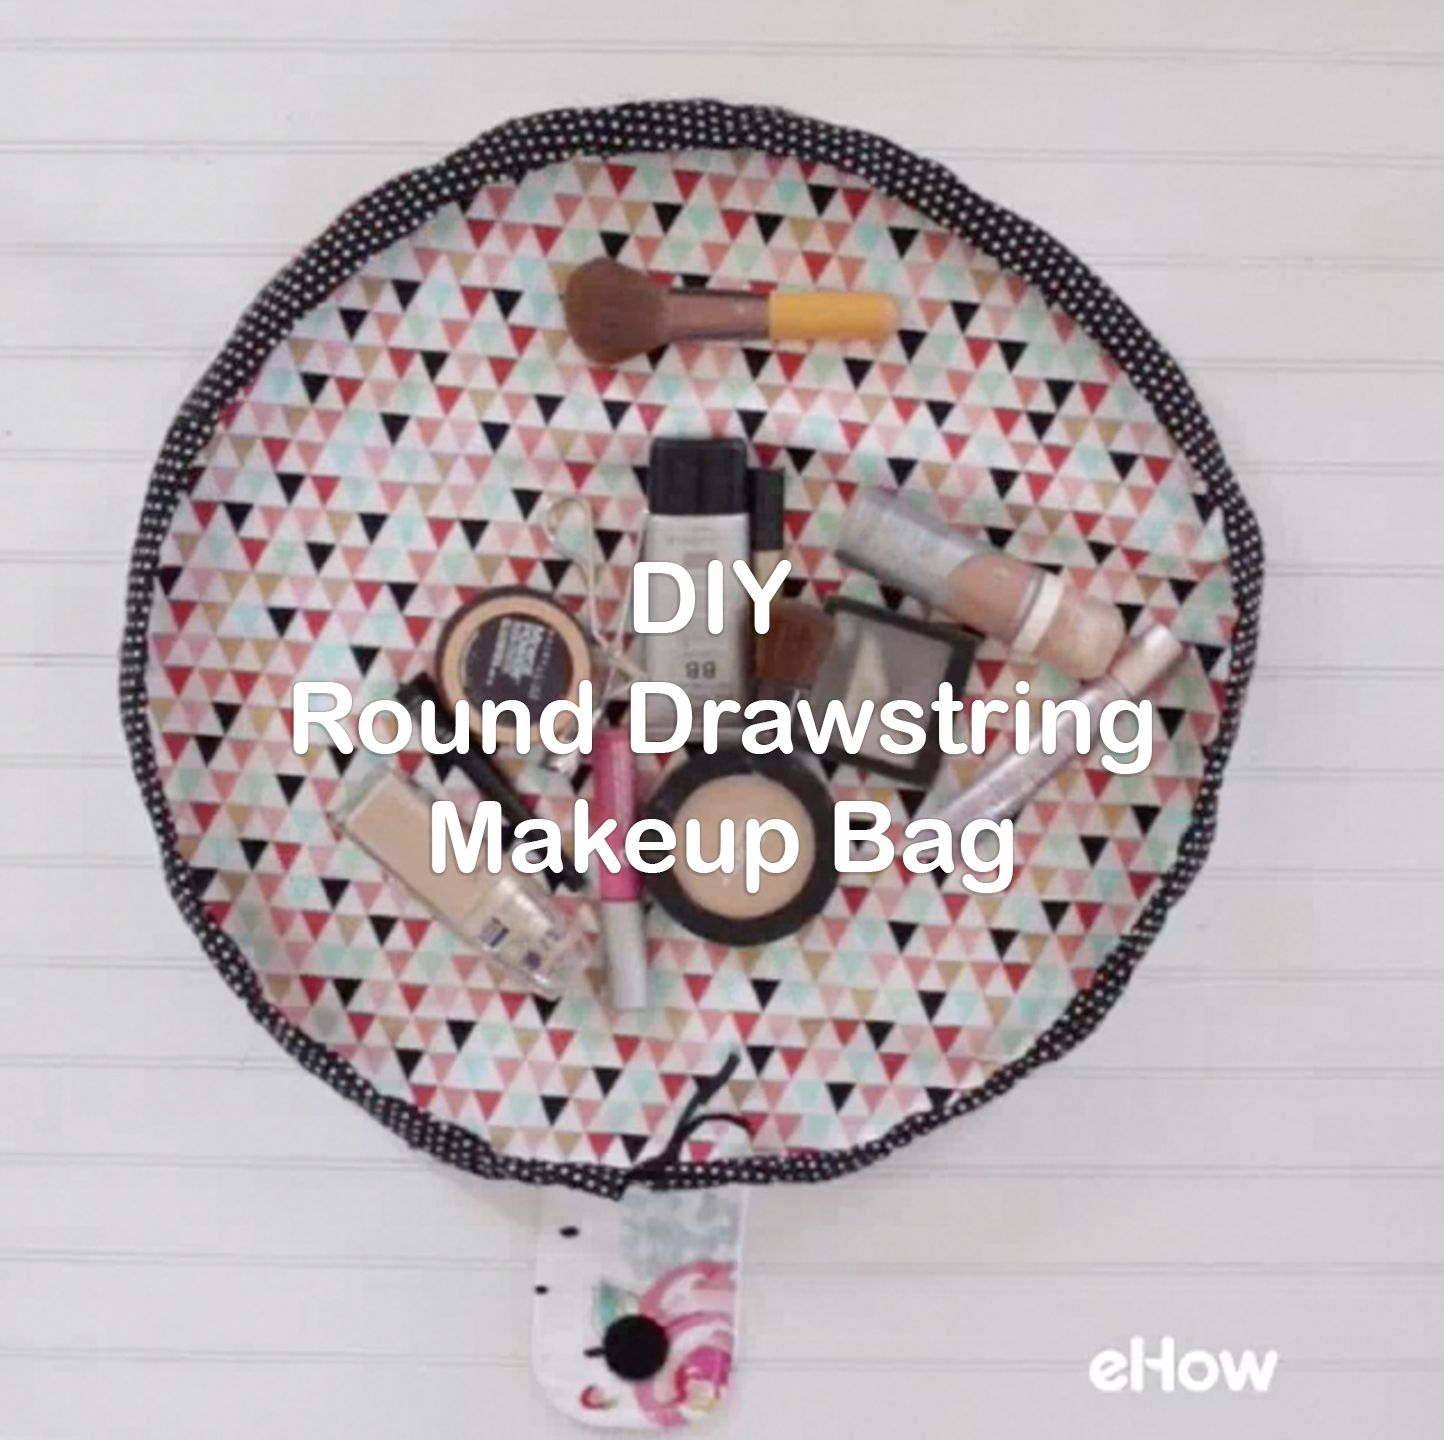 DIY Round Drawstring Makeup Bag